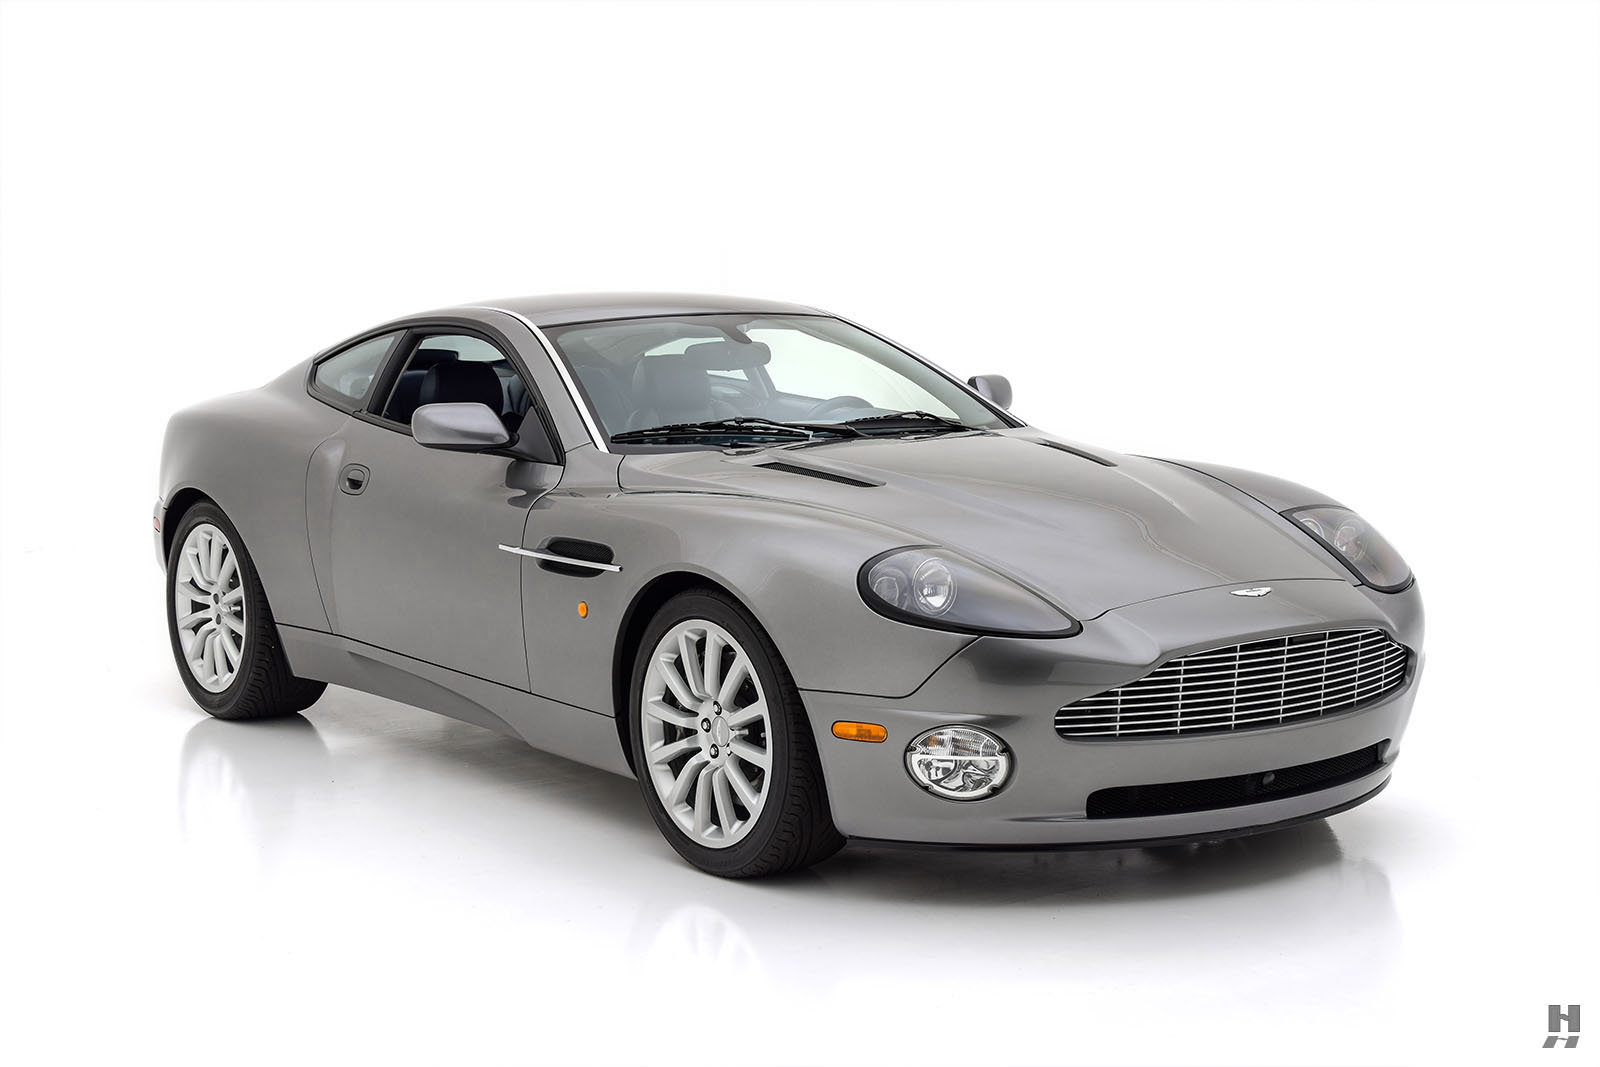 2002 ASTON MARTIN VANQUISH 6 SPEED MANUAL COUPE For Sale (picture 2 of 6)